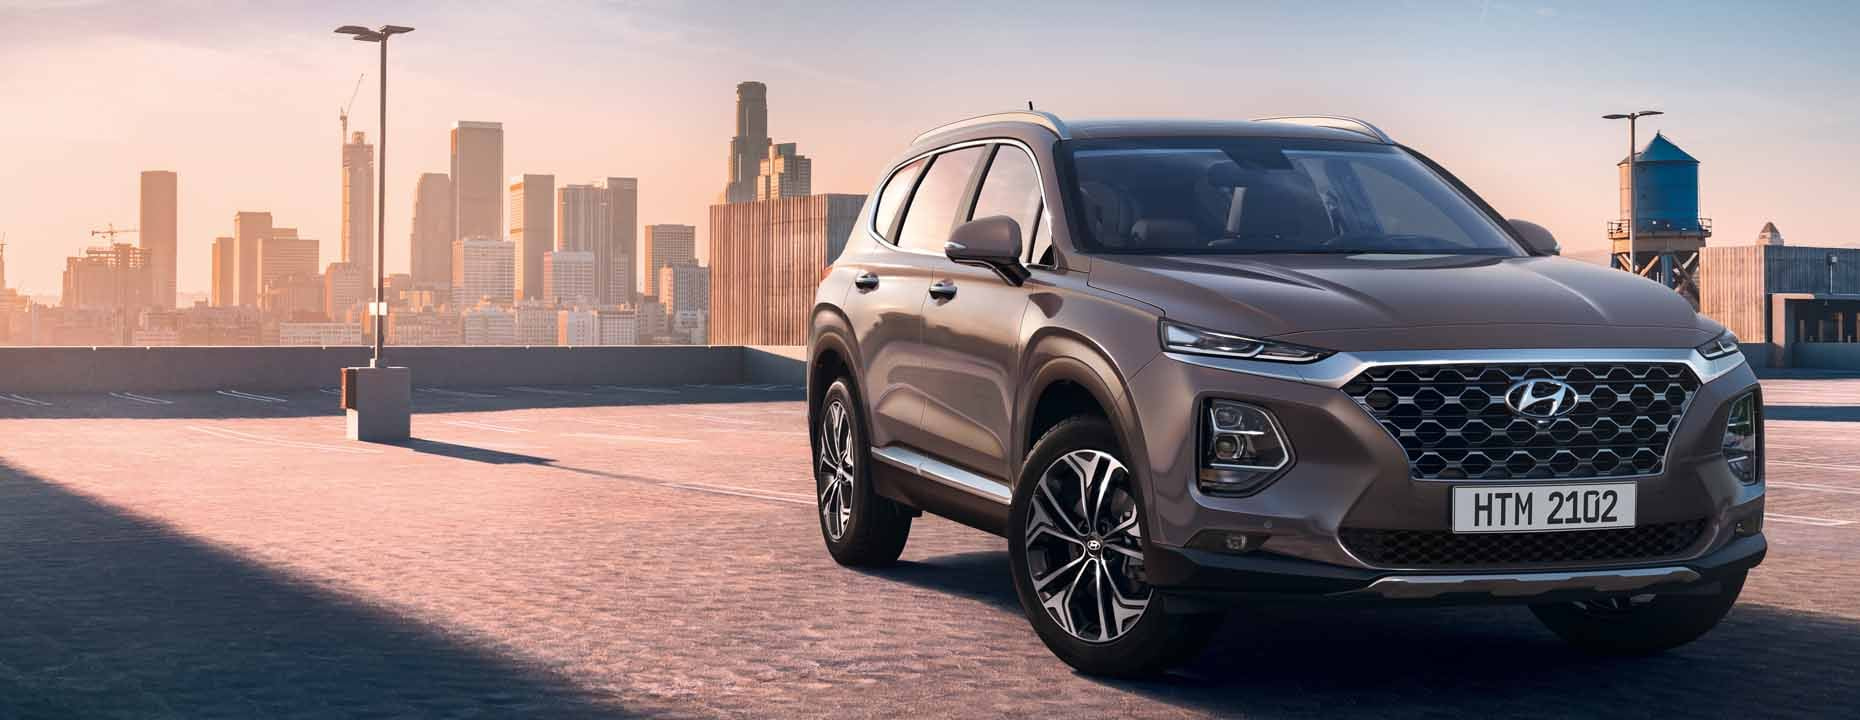 The All-New Hyundai Santa Fe